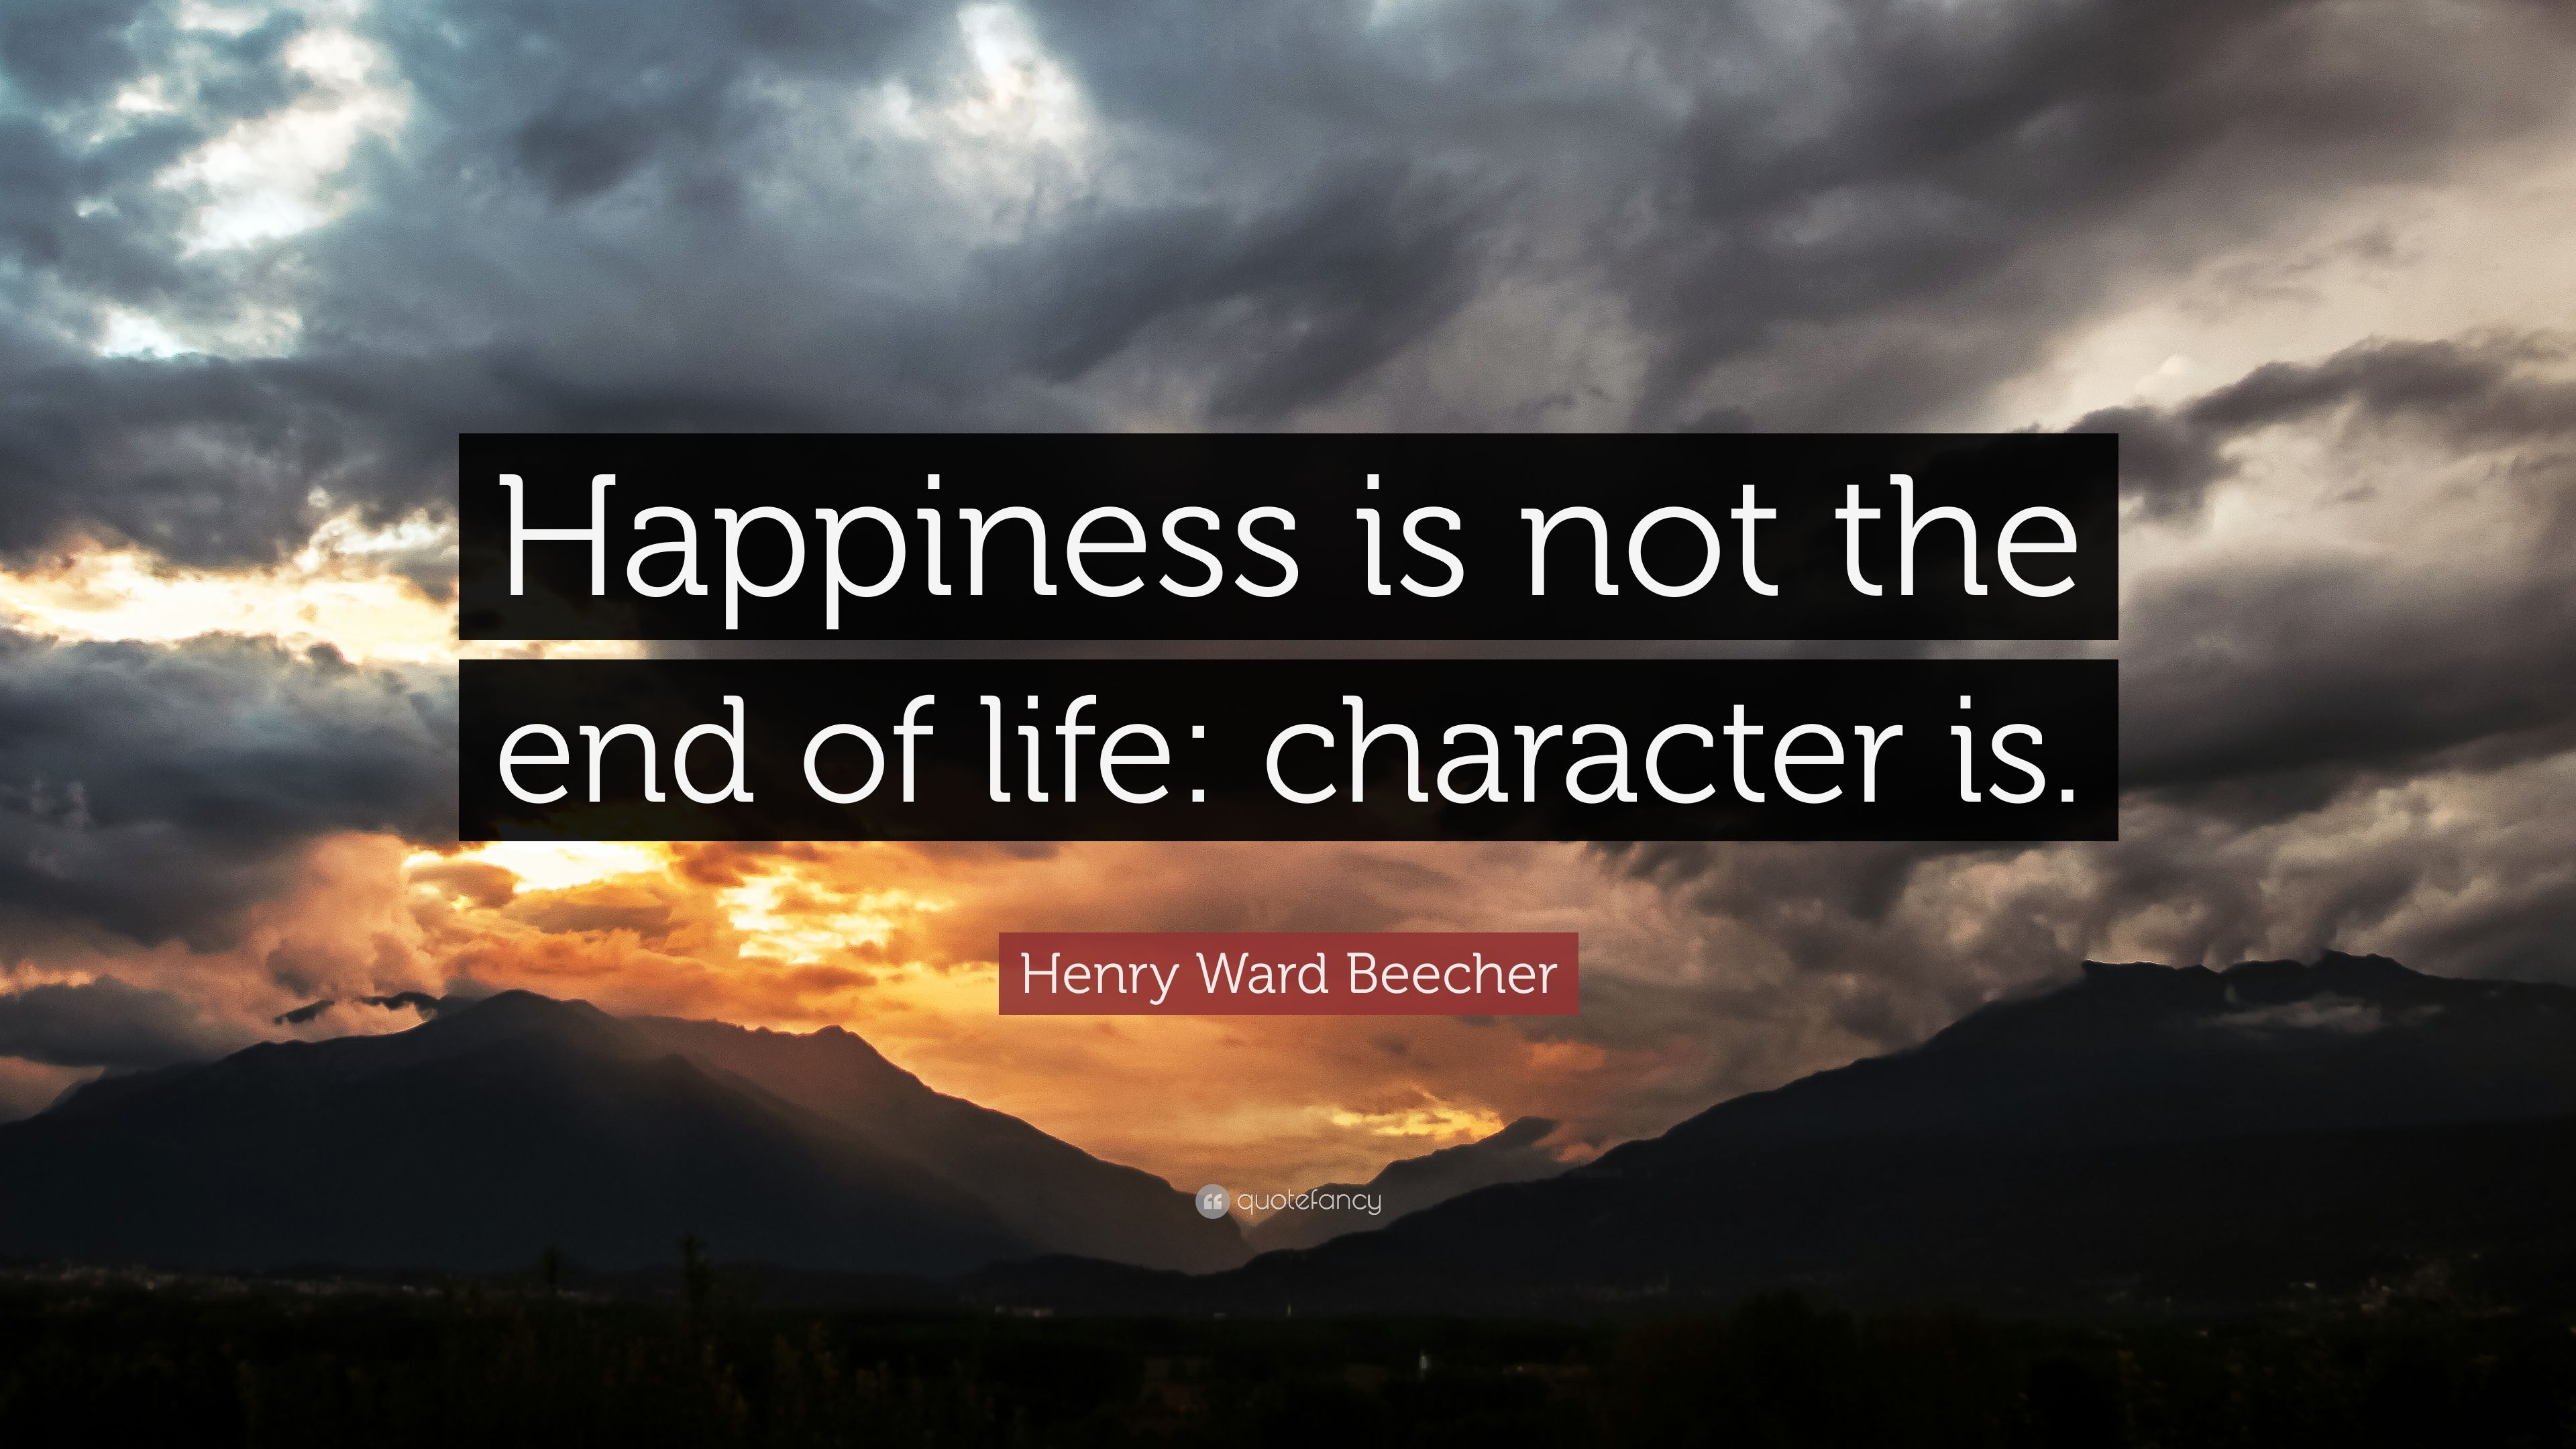 Henry Ward Beecher Quote: U201cHappiness Is Not The End Of Life: Character Is